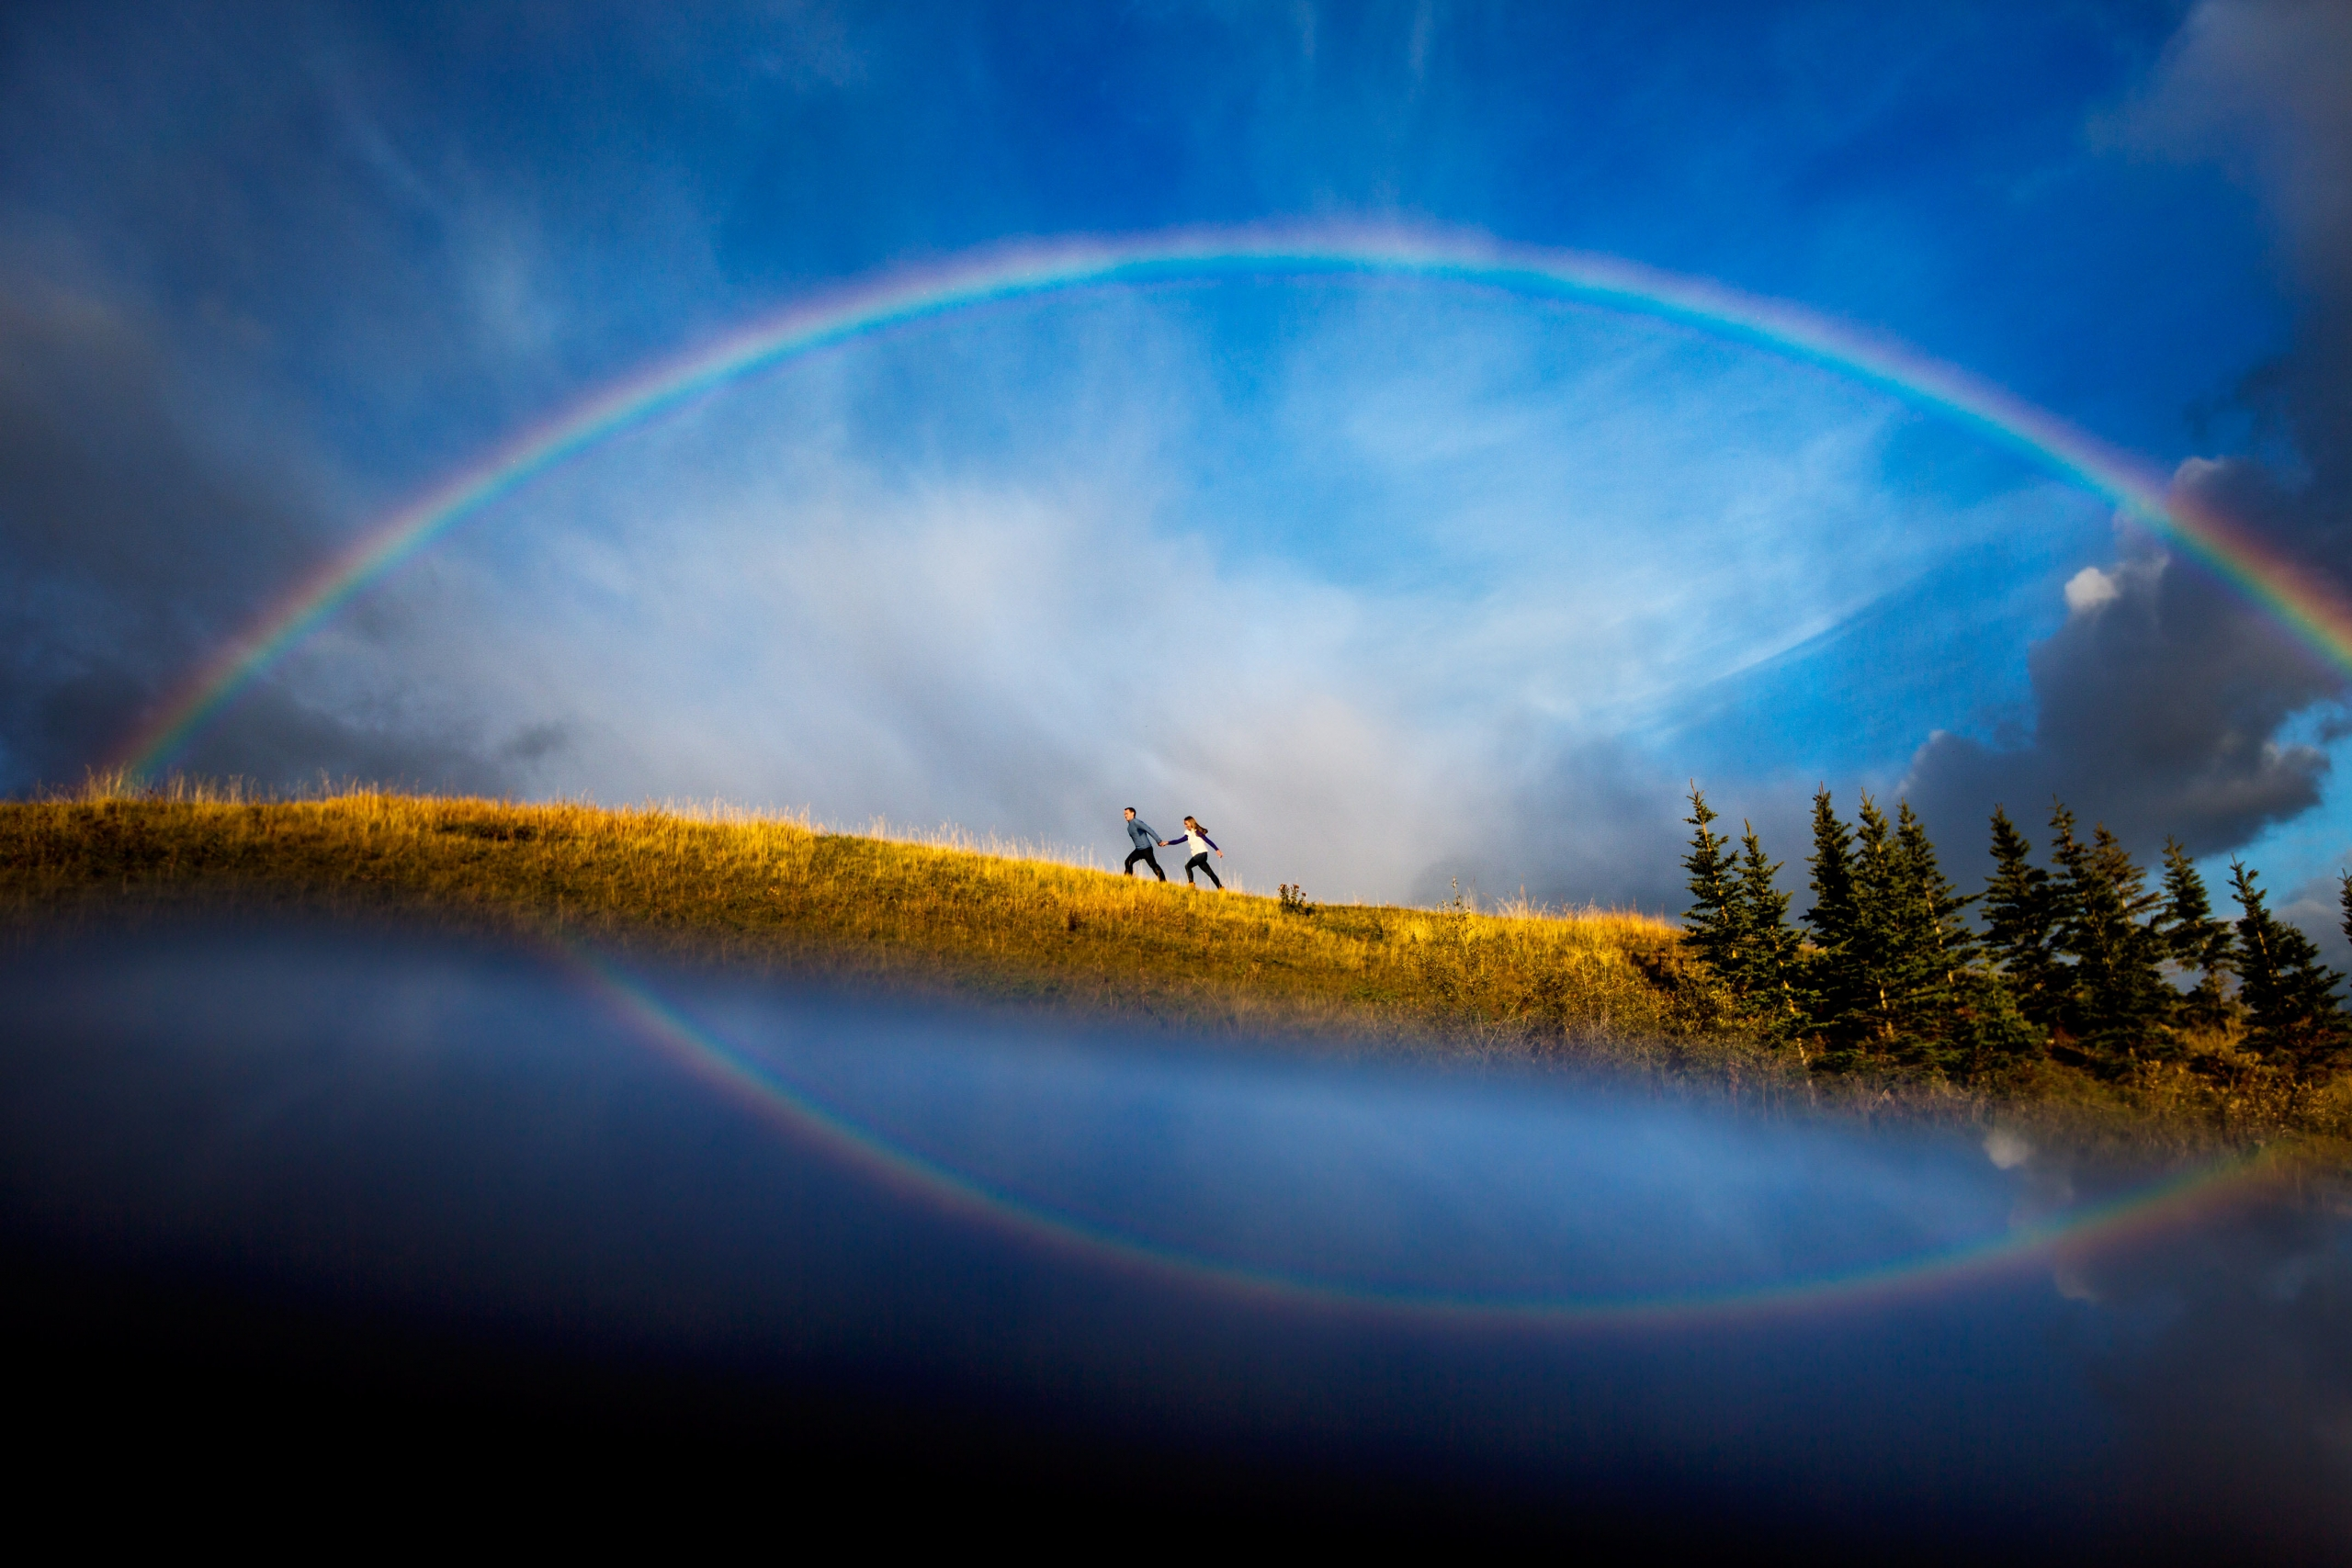 Couple walking uphill with sky and rainbow reflected